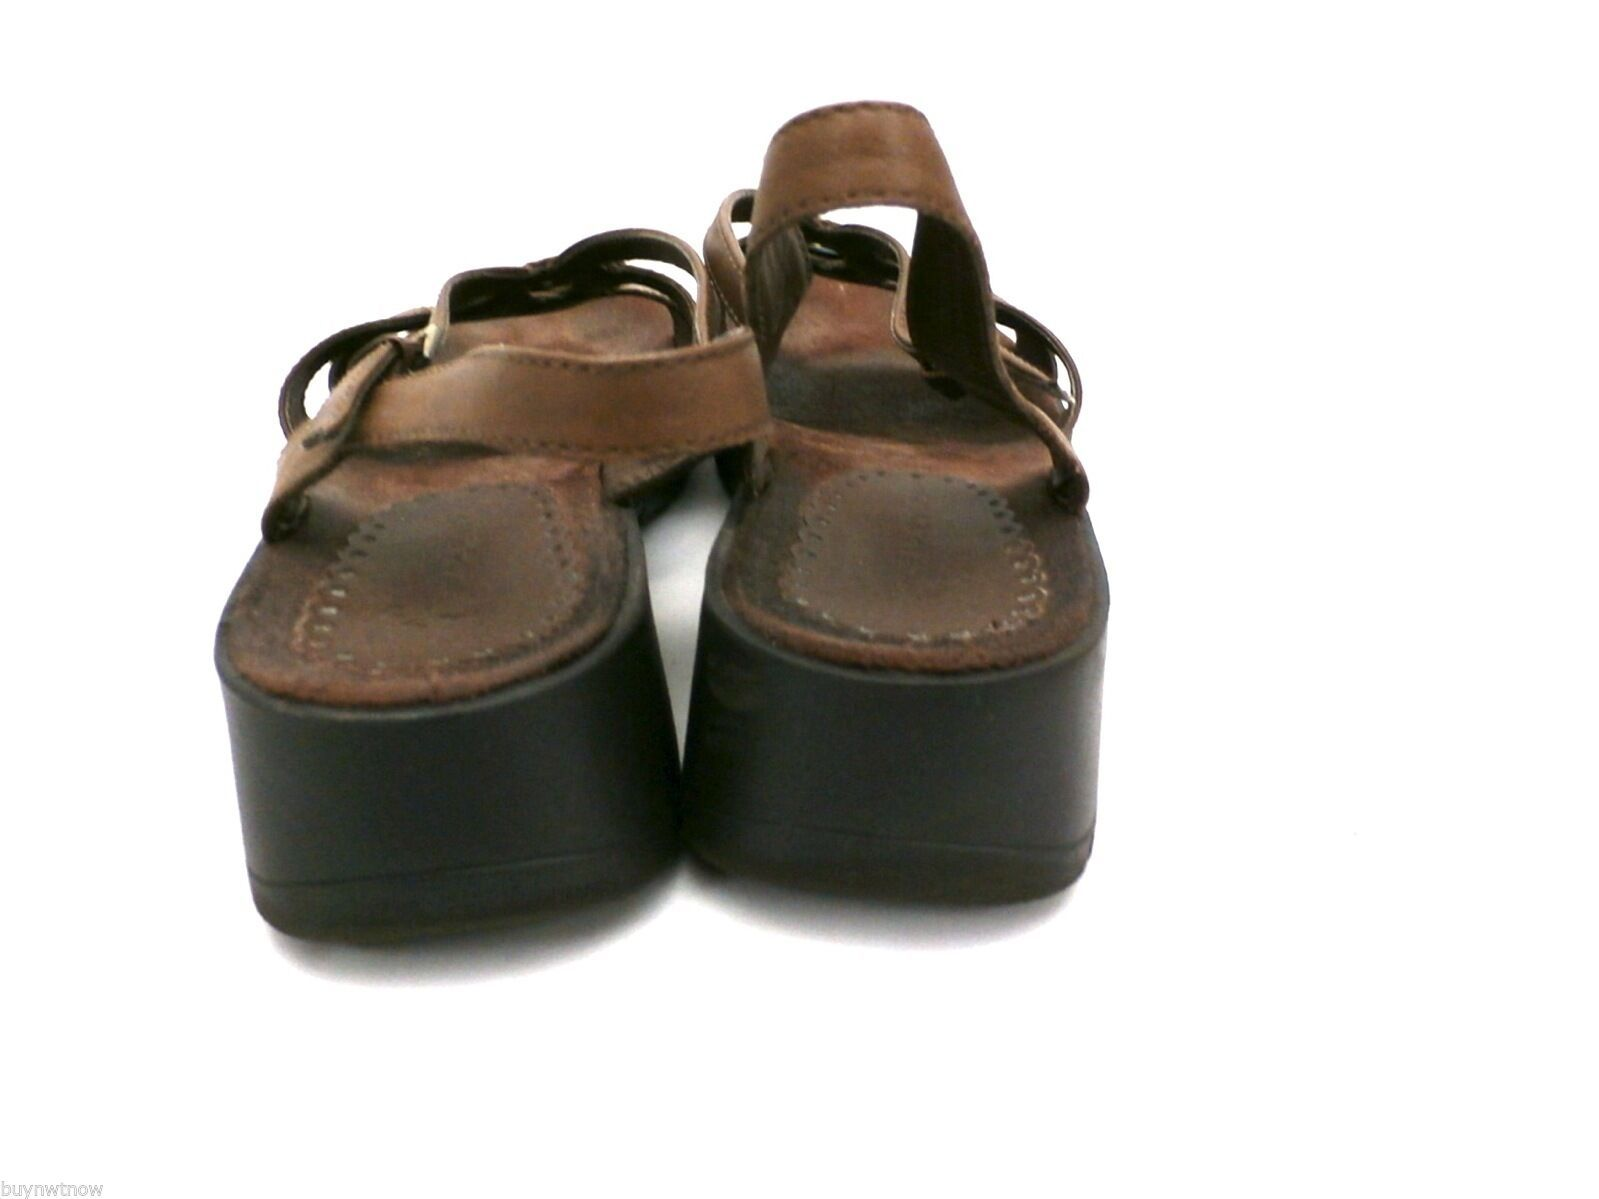 Womens Wear Ever Brown Leather Sandals Comfort Ostep 8.5 M image 3